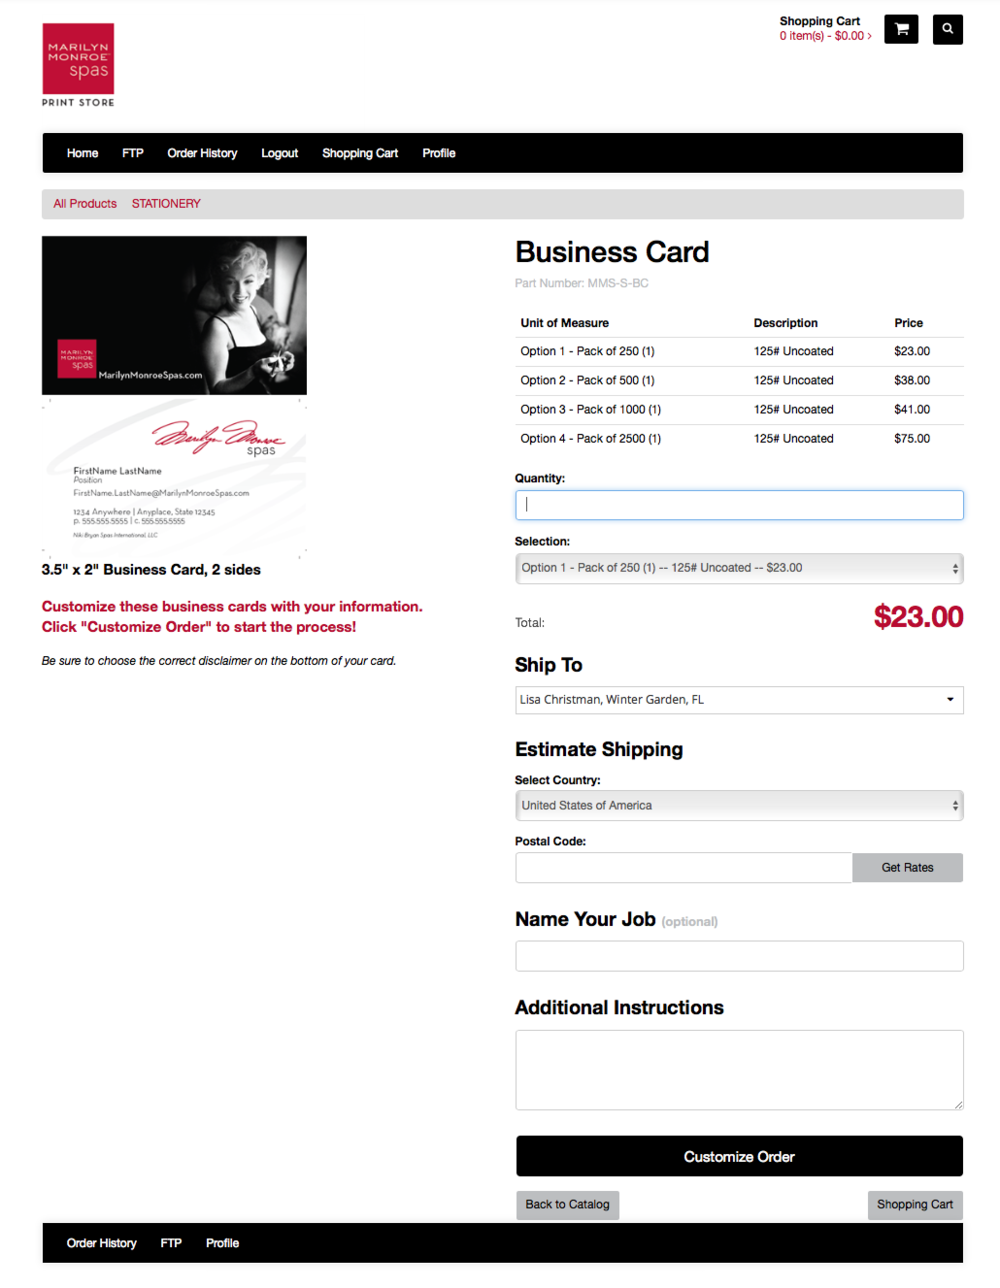 Example: Purchasing Business Cards